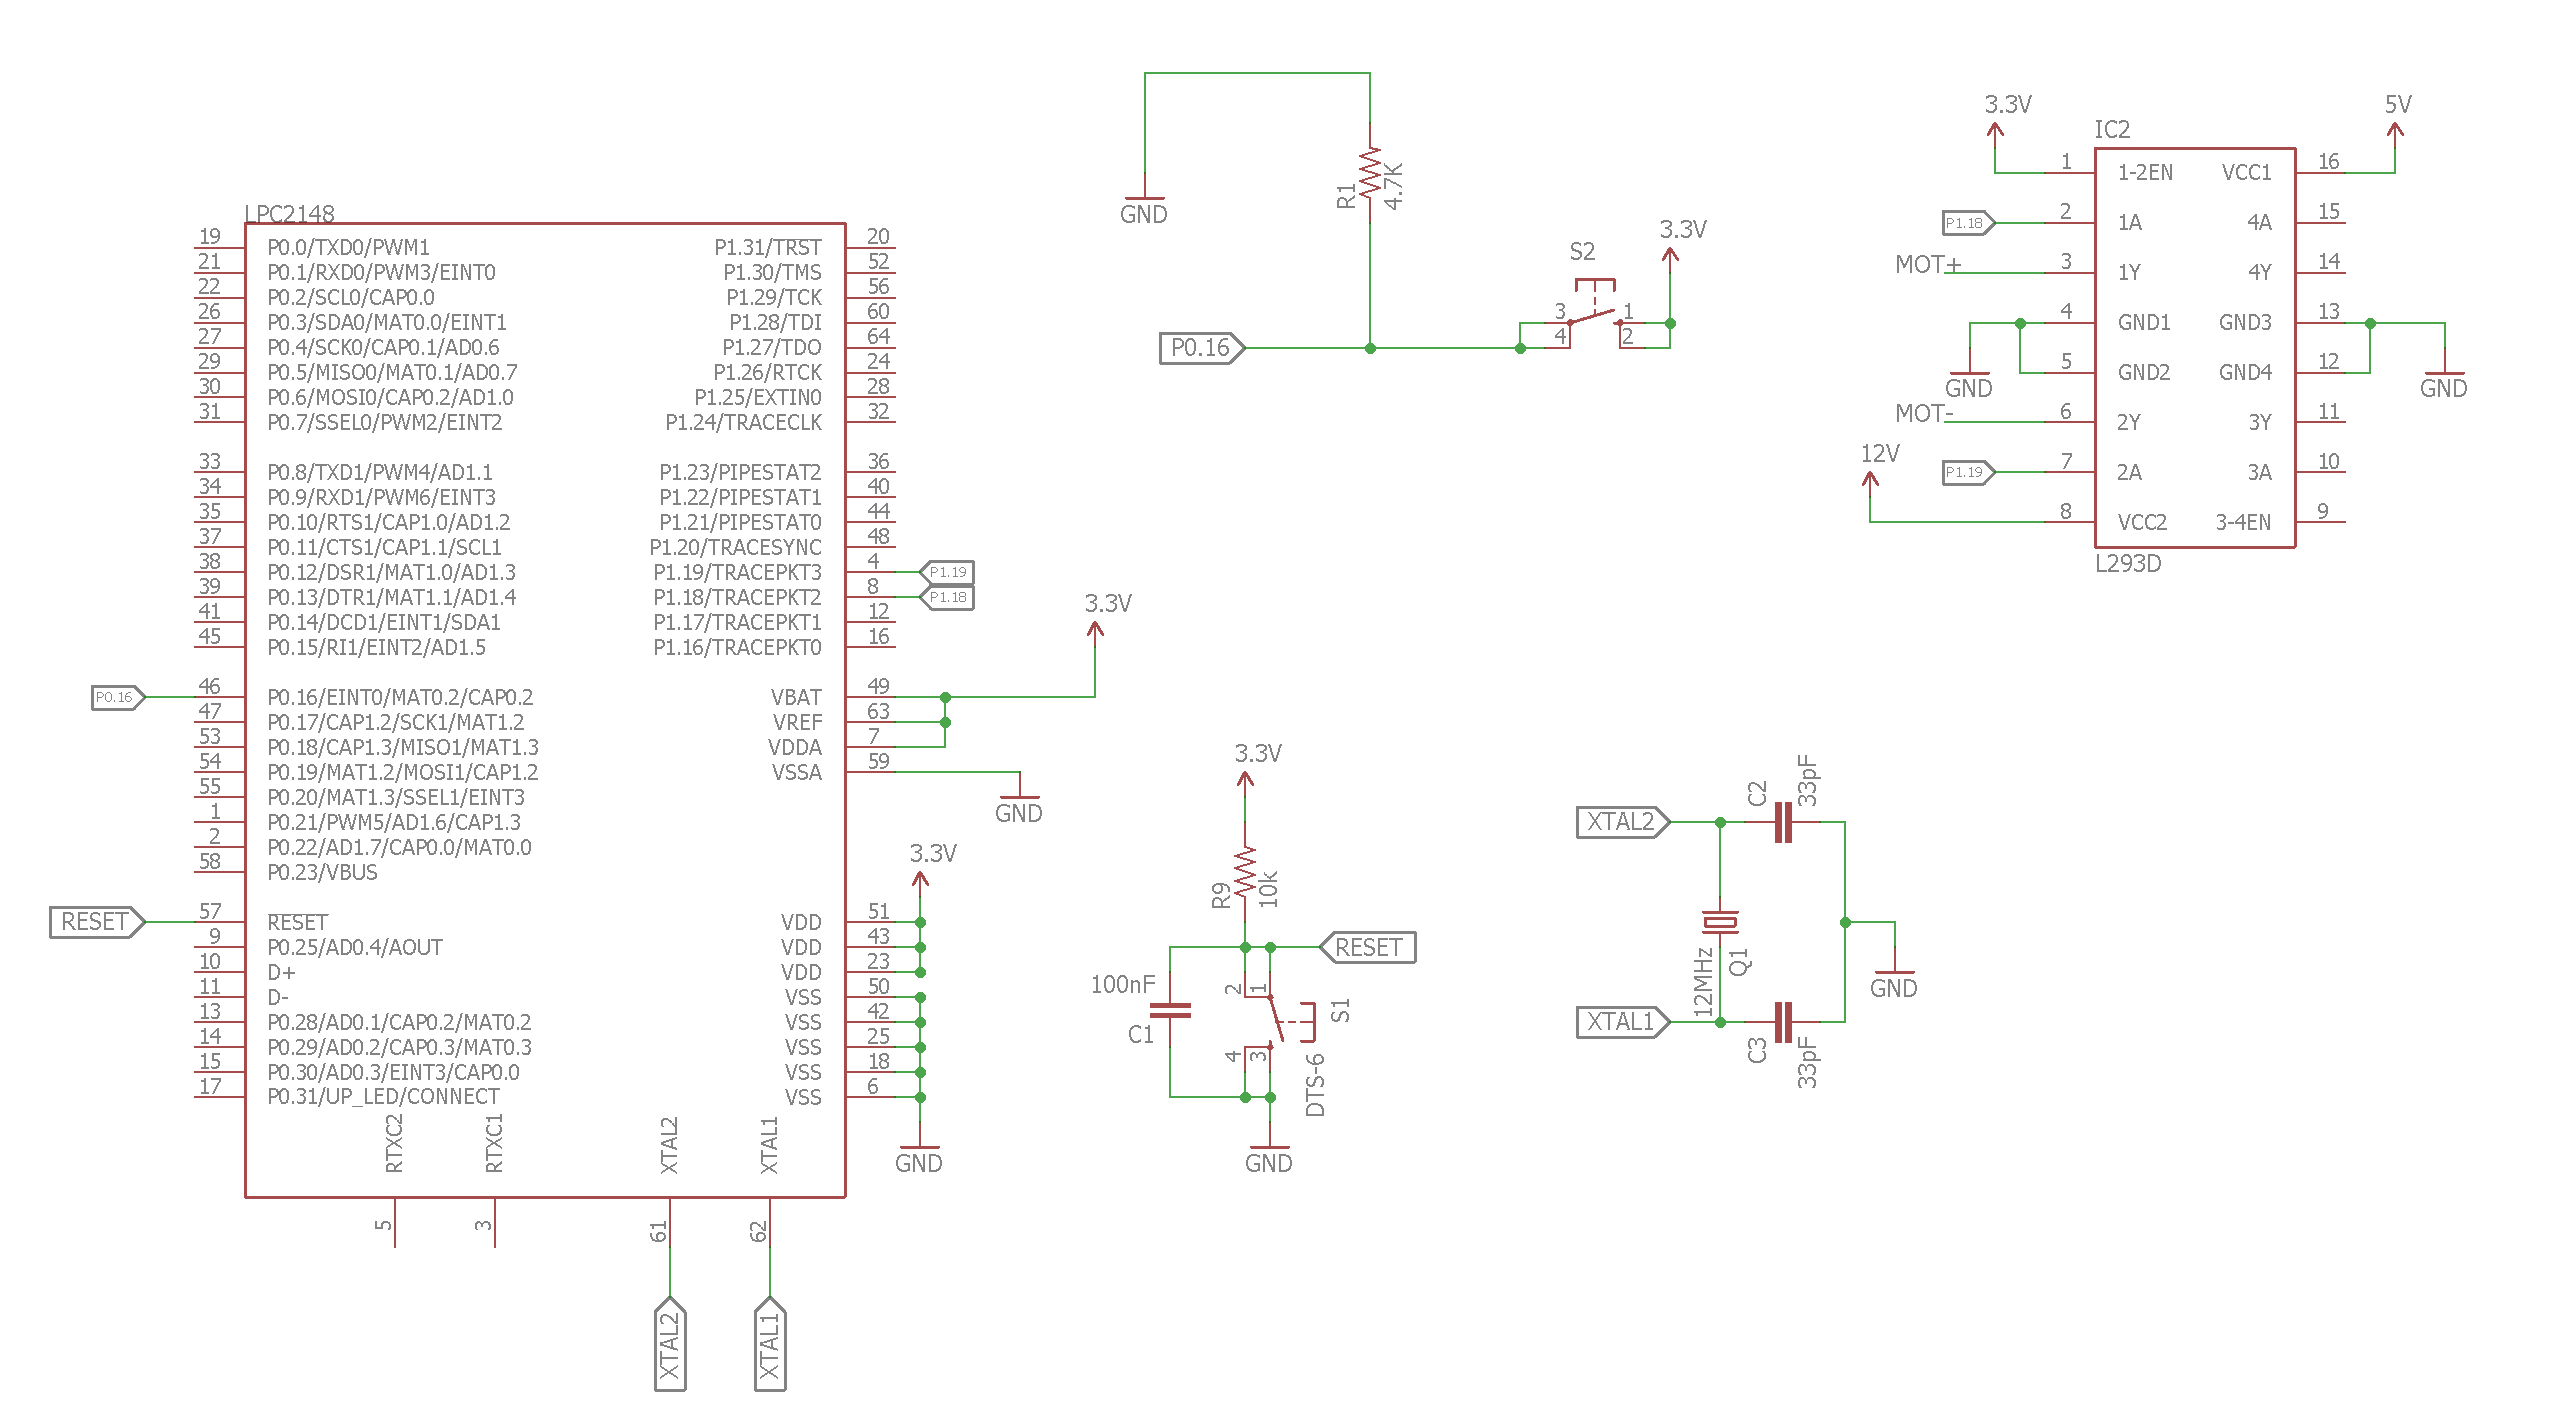 Motor Control Wiring Diagram Diagrams Schematic Symbols On Pdf Dc Using Arm7 Lpc2148 For Forward Reverse Example